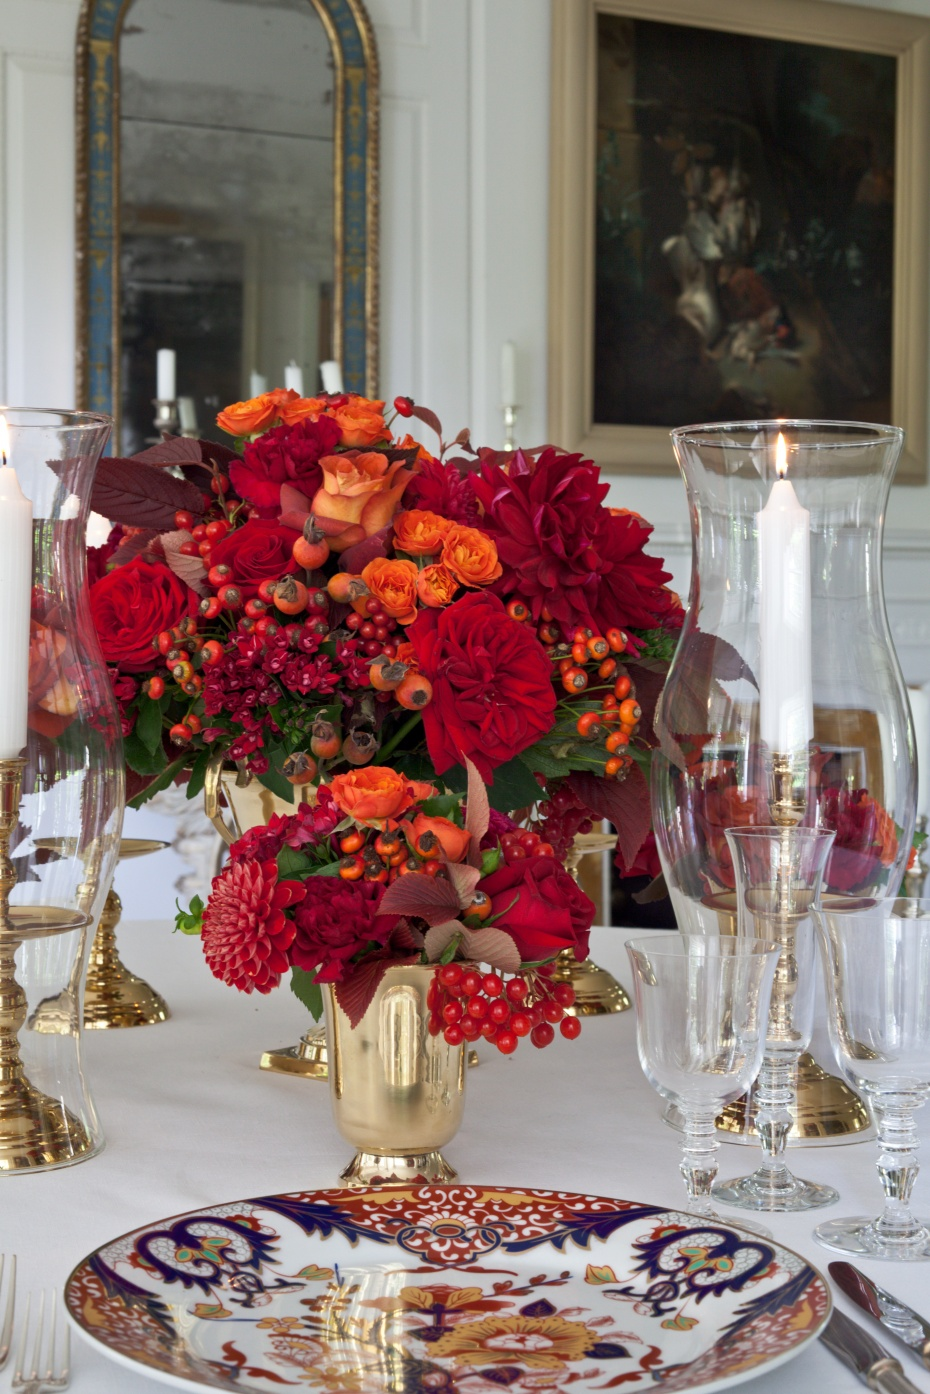 C arolyne Roehm  has a wonderful gift for arranging florals, creating grand tablescapes that are quite breathtaking